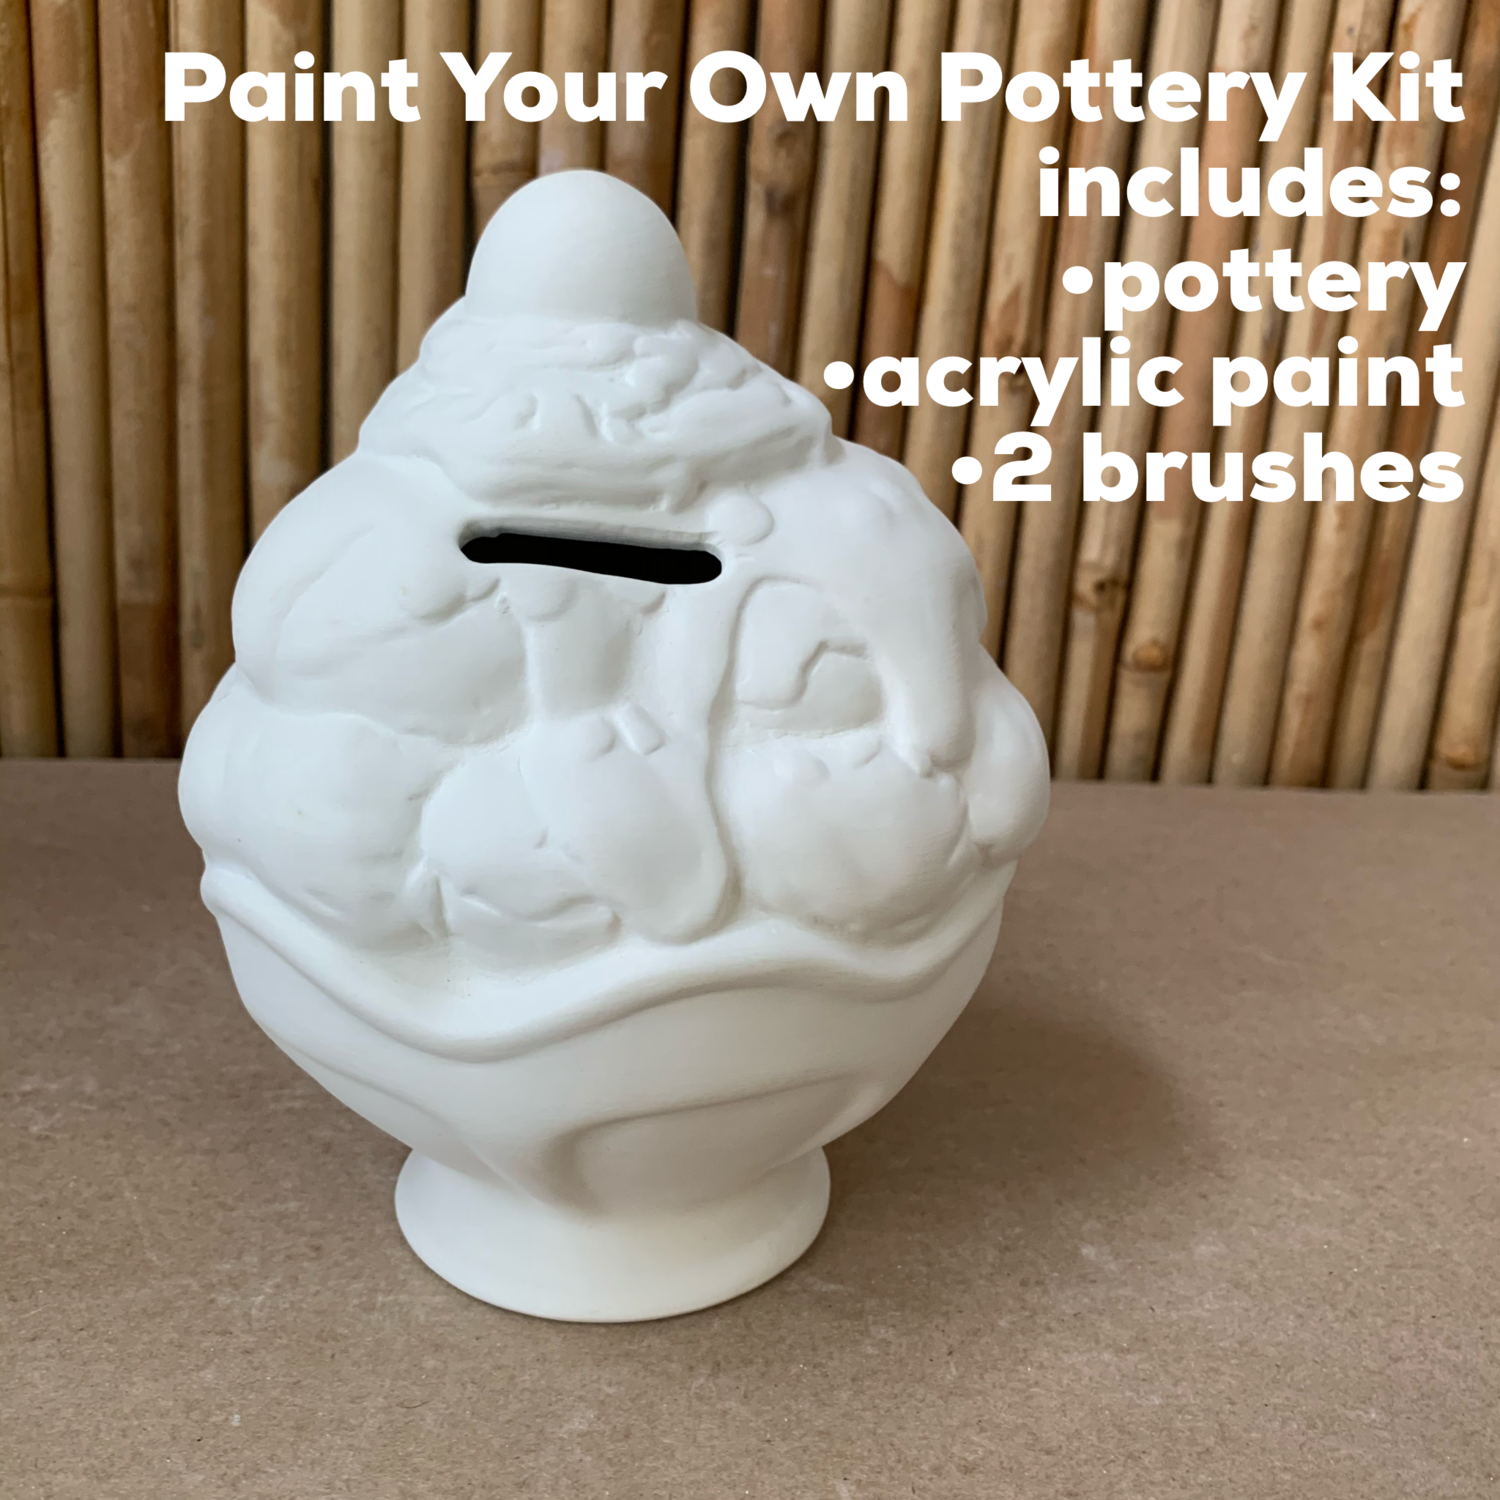 NO FIRE Paint Your Own Pottery Kit -  Ceramic Ice Cream Sundae Bank Acrylic Painting Kit